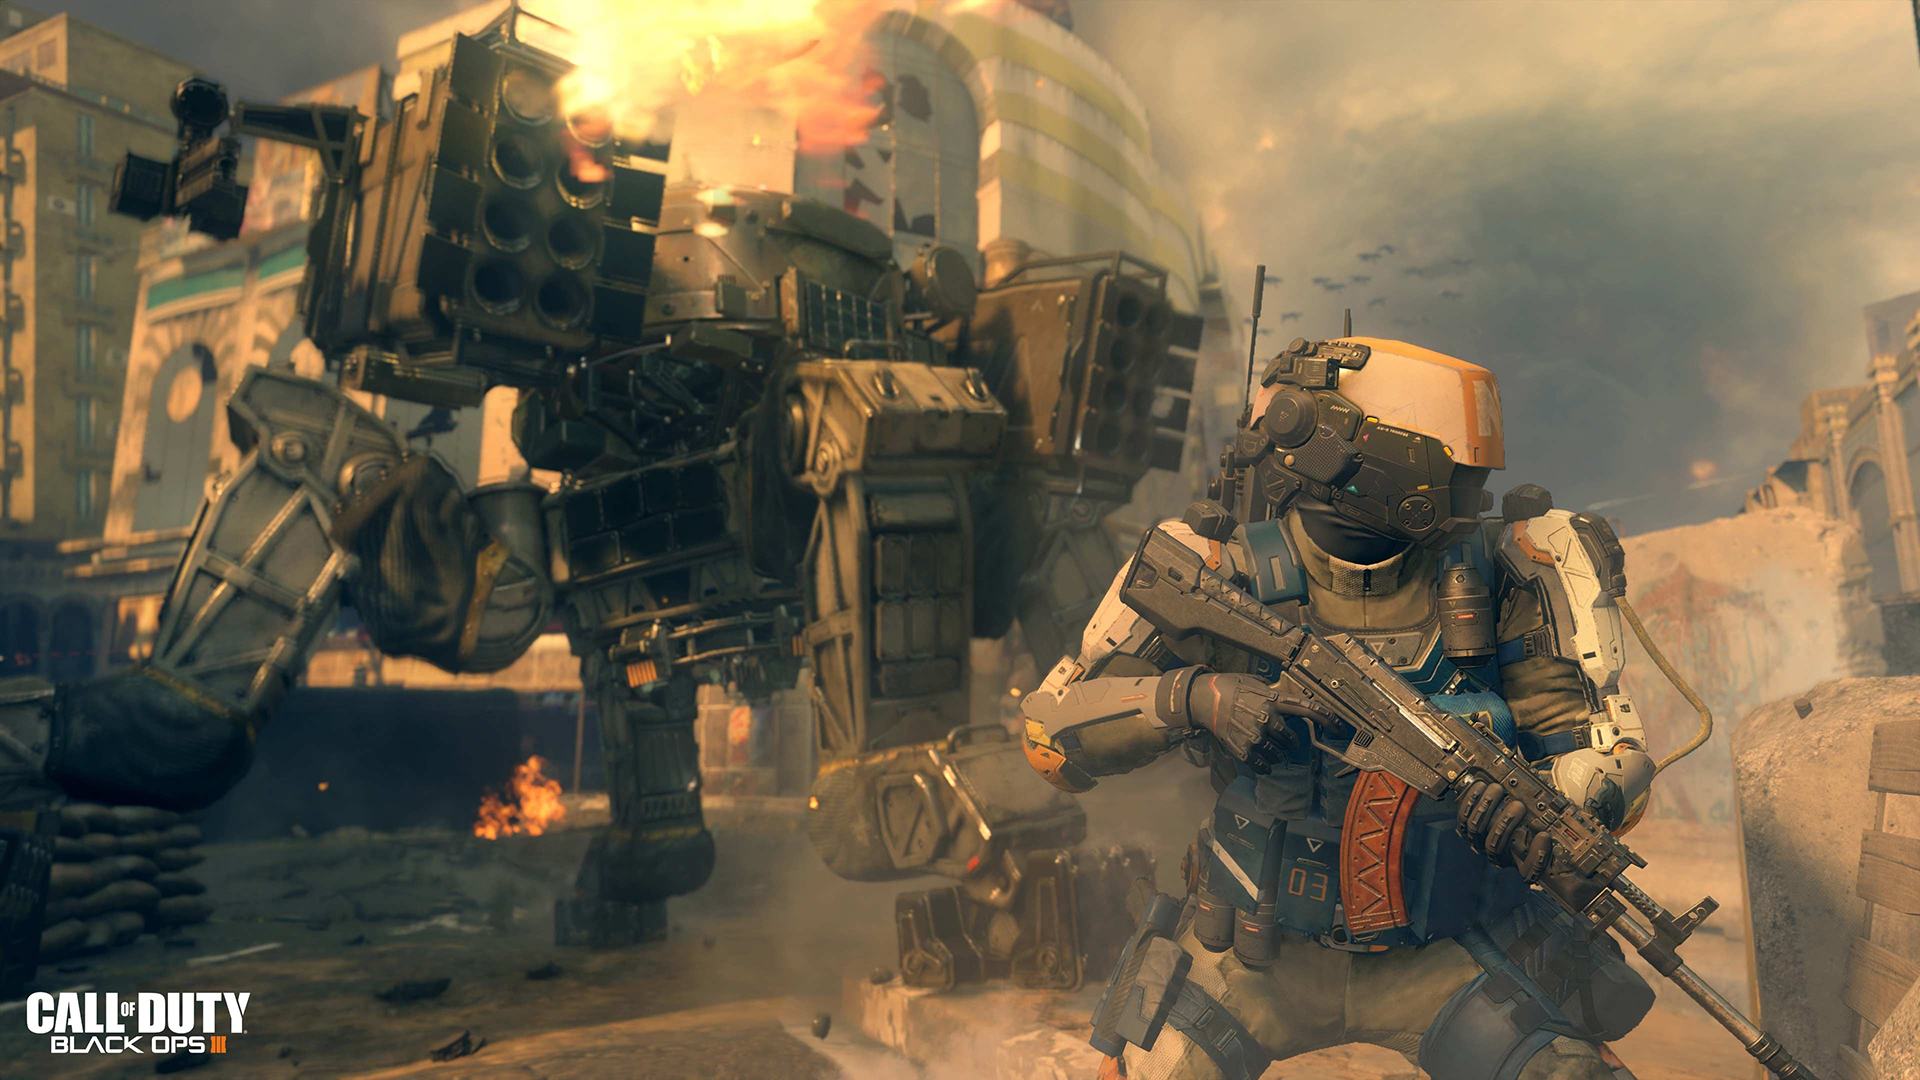 Call Of Duty: Black Ops 3 Screenshots Introduce Super-Soldiers And Robots  #32758